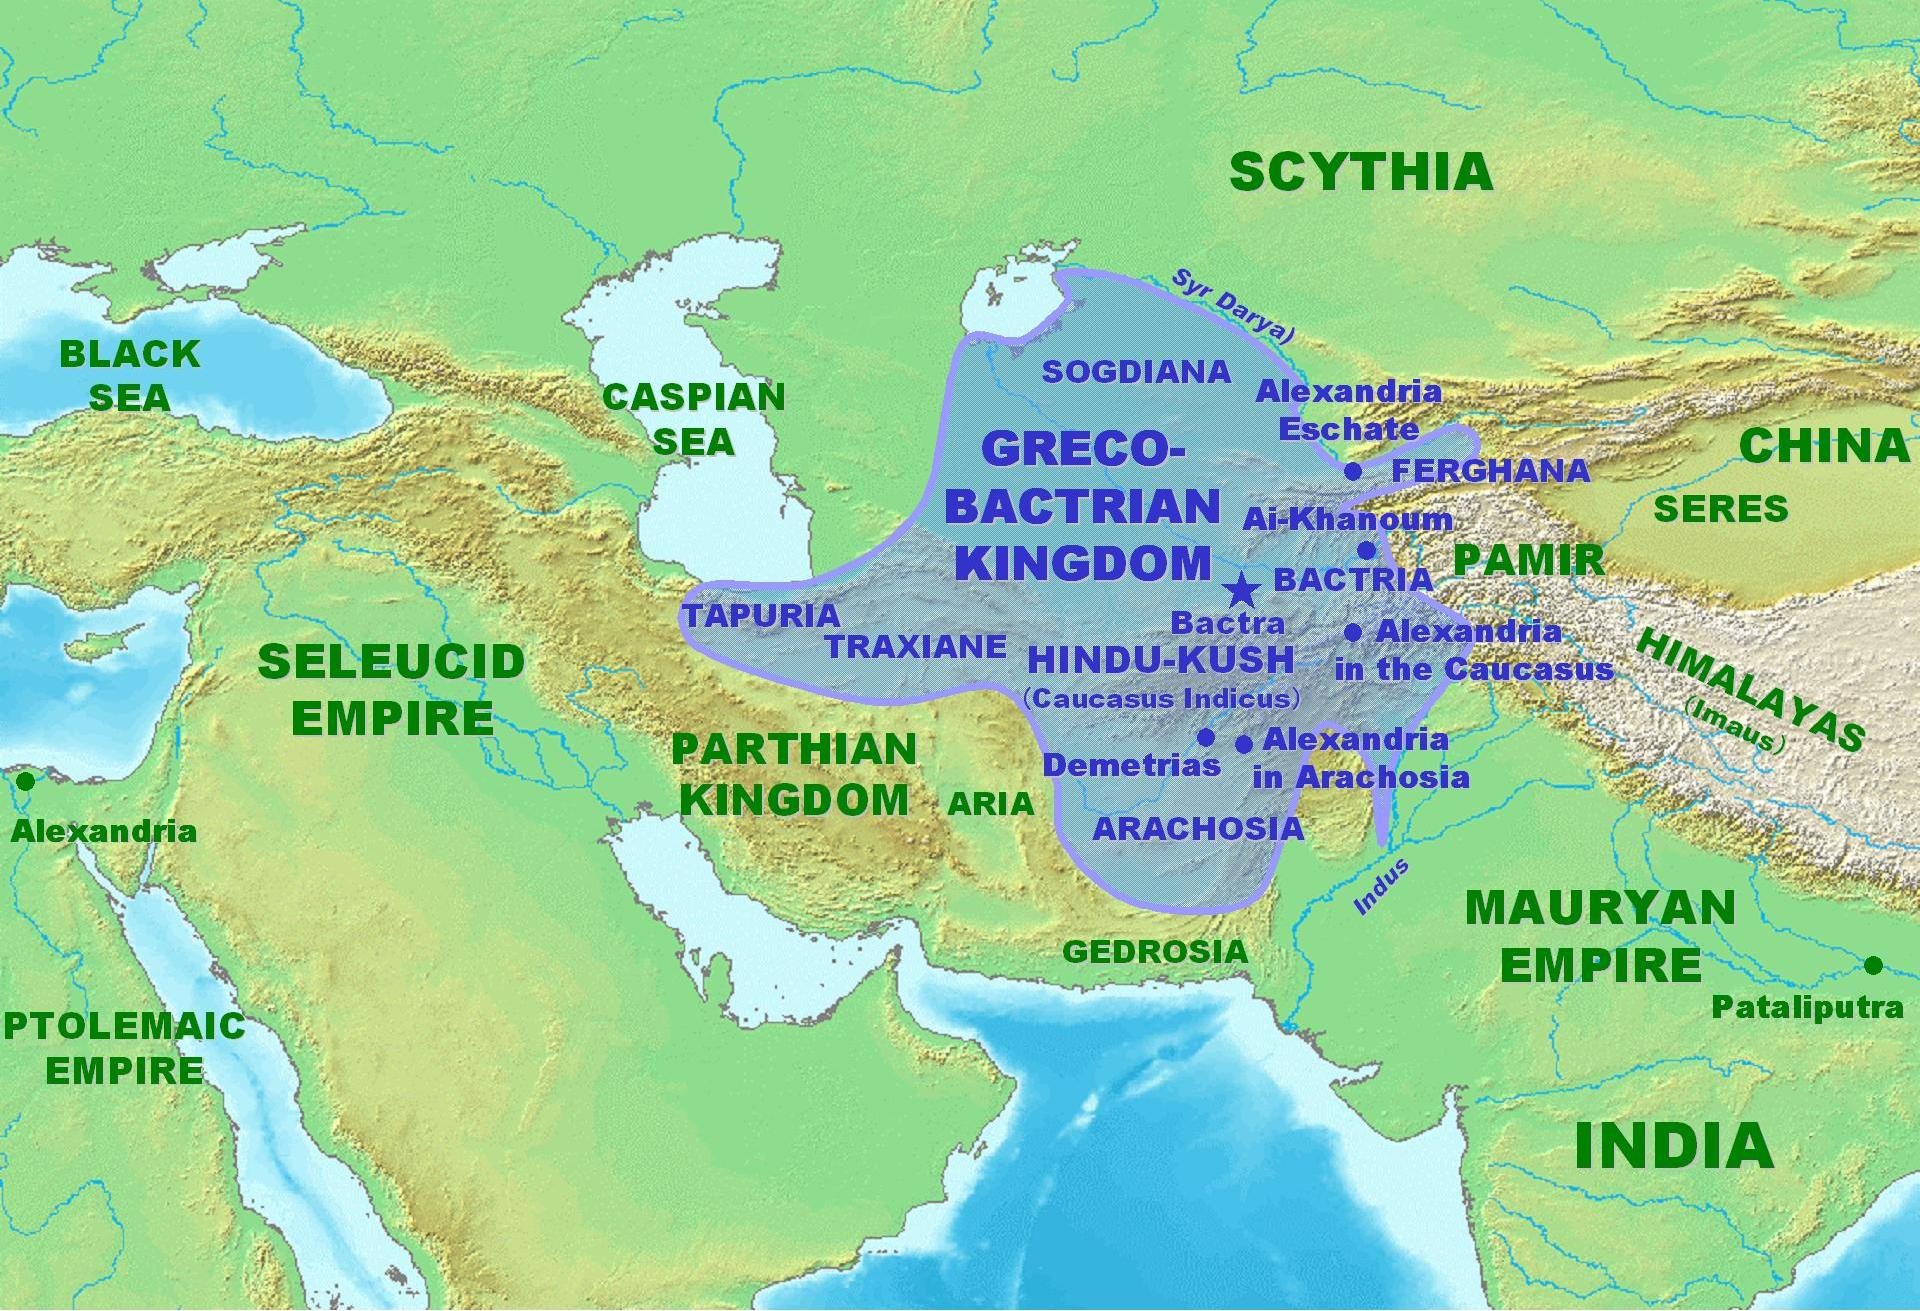 https://i1.wp.com/upload.wikimedia.org/wikipedia/commons/0/07/Greco-BactrianKingdomMap.jpg